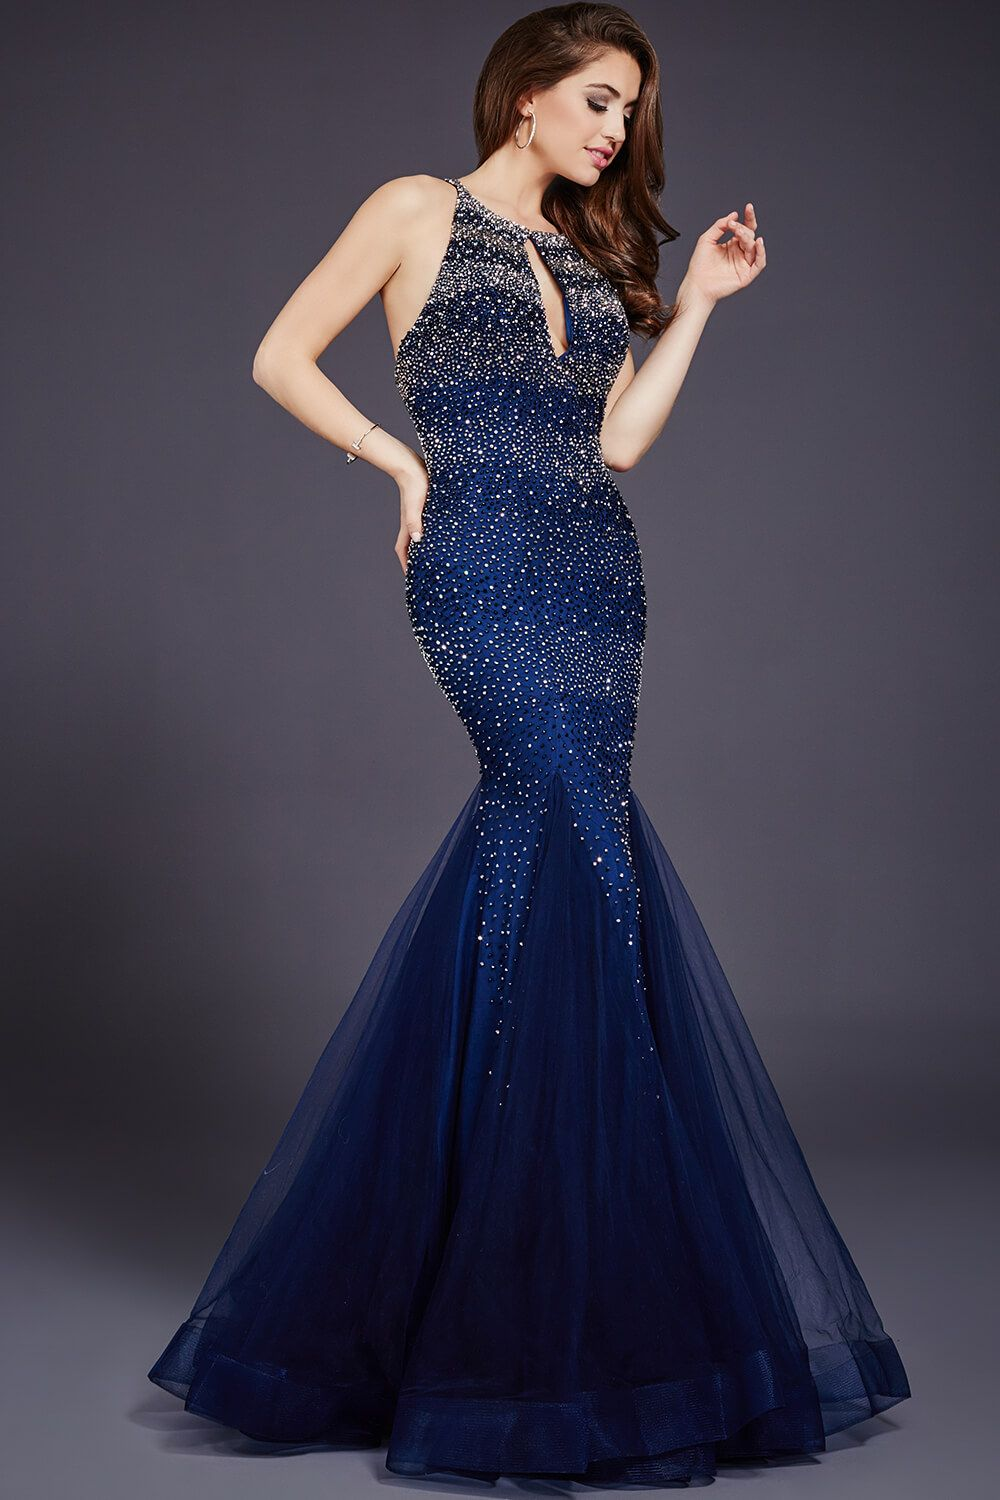 Dazzling sleeveless mermaid dress features a keyhole opening and ...